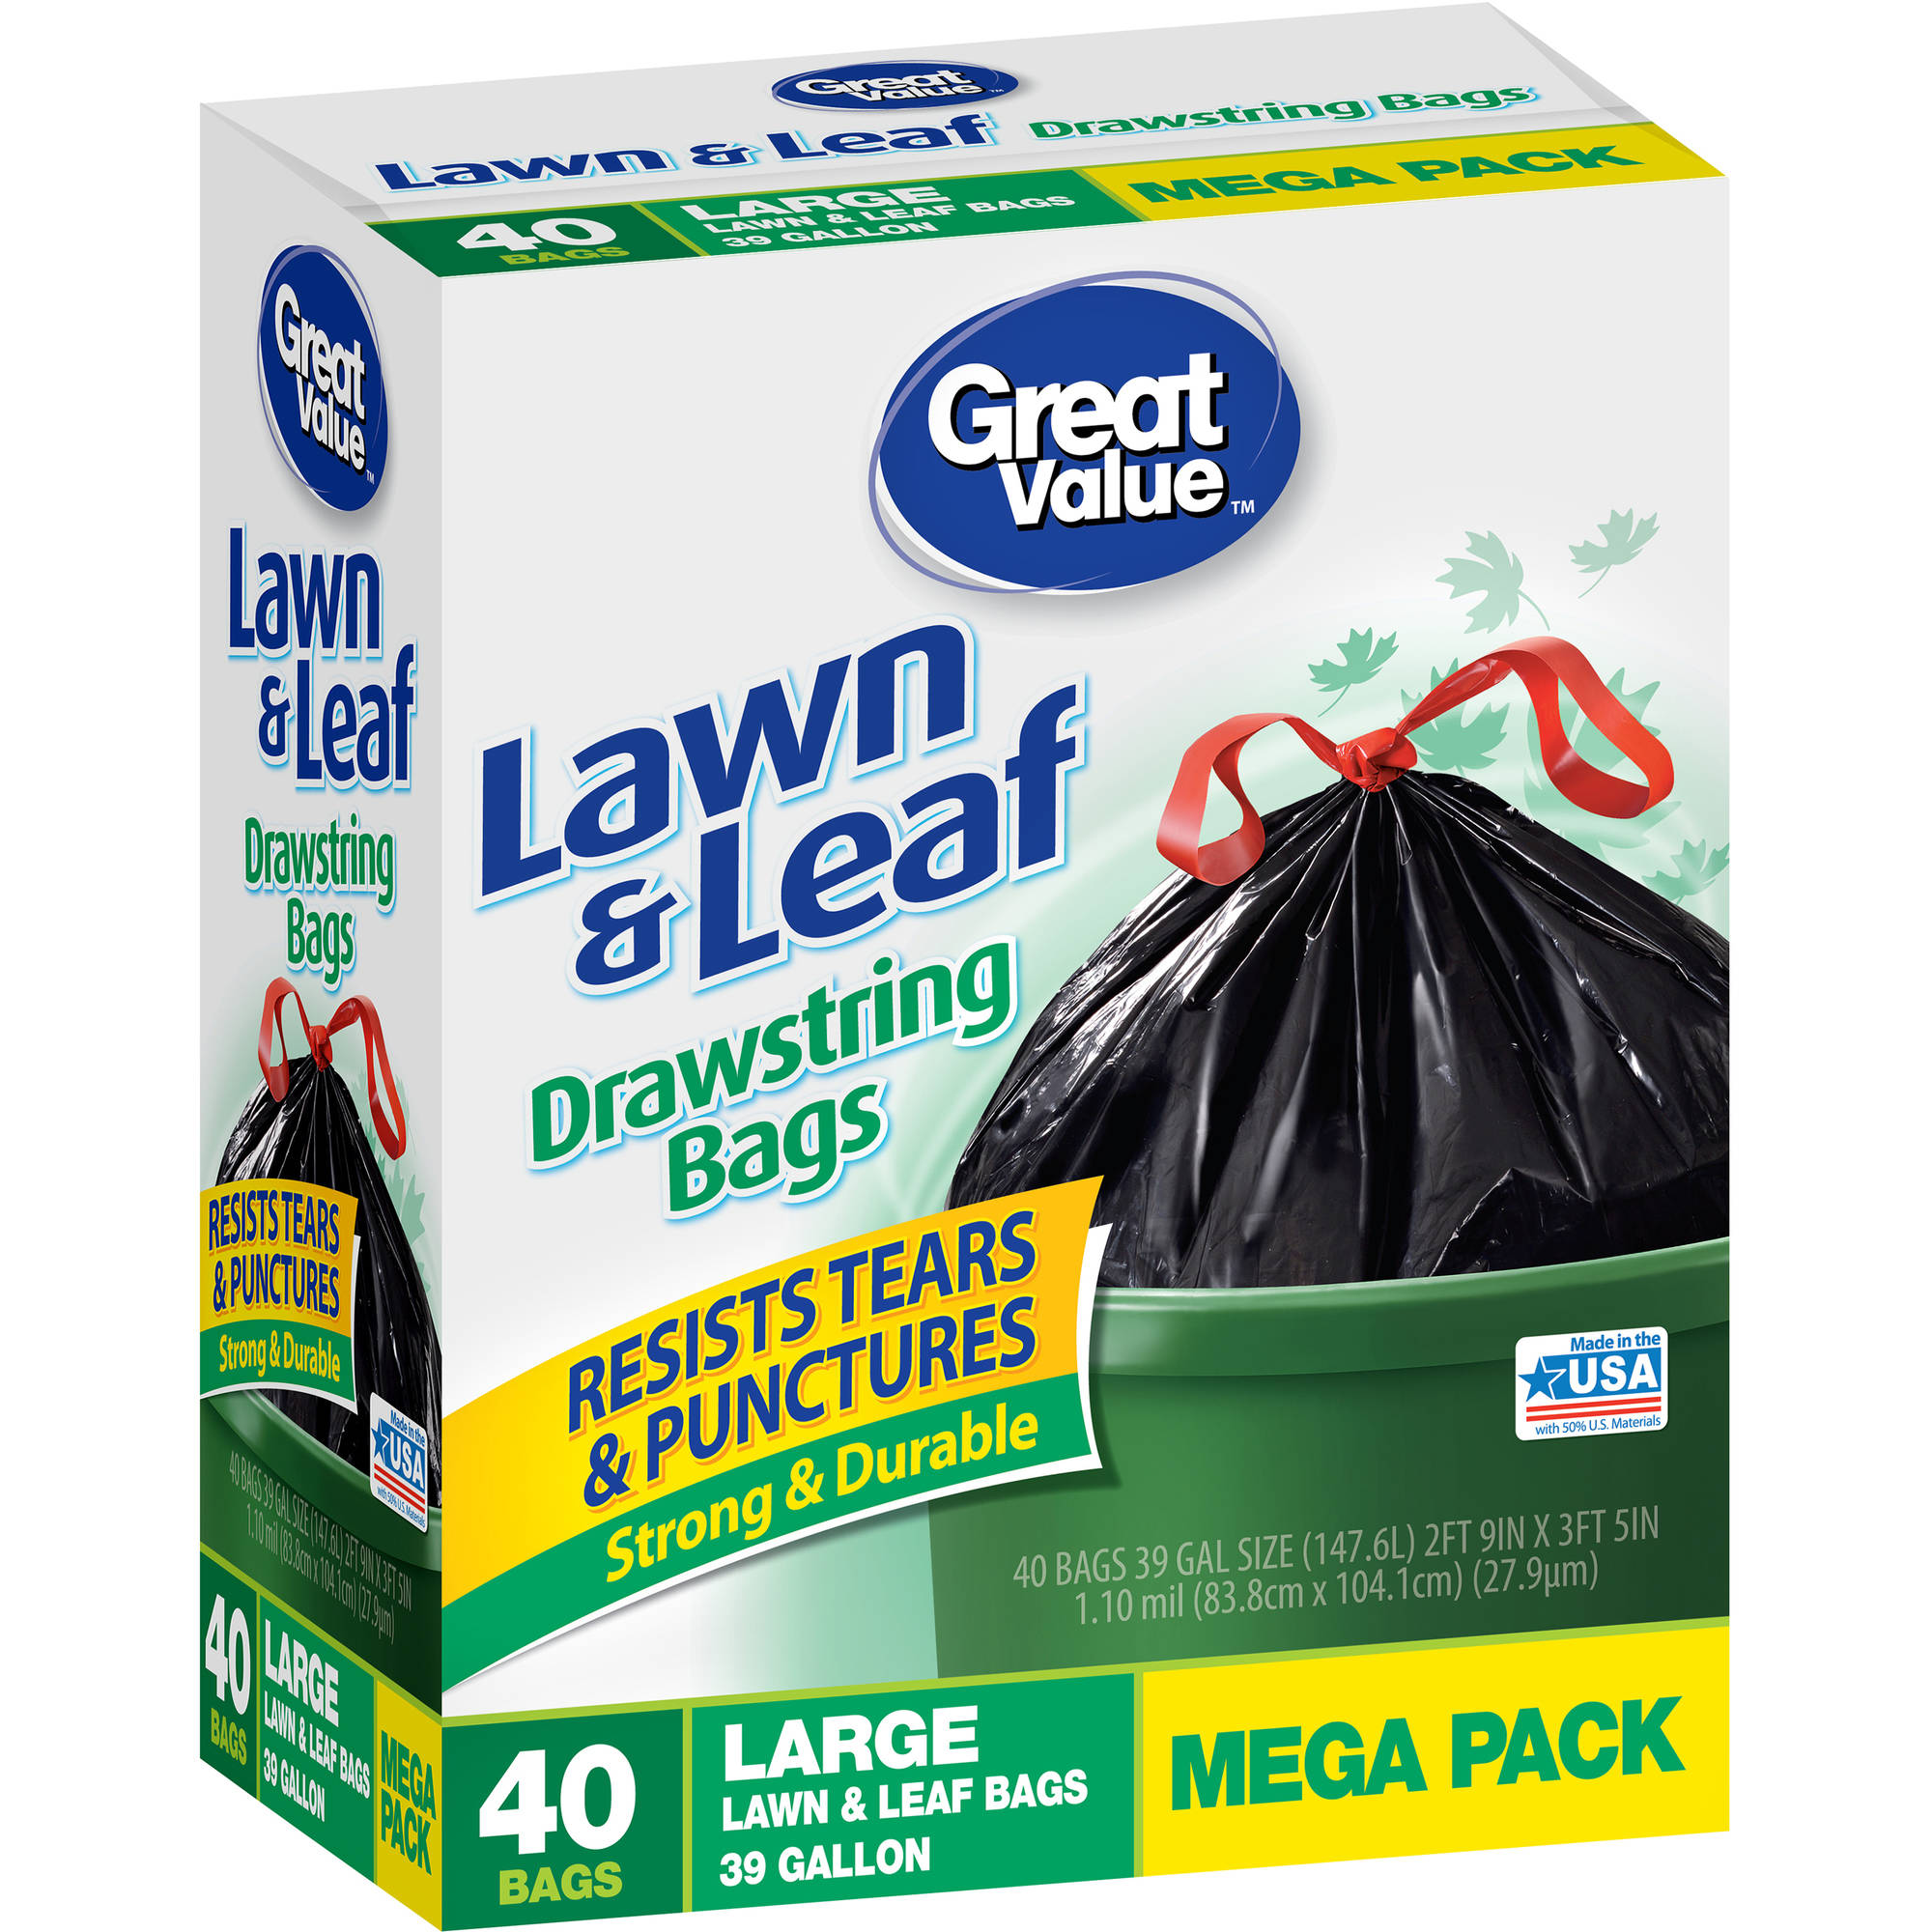 Great Value Lawn & Leaf Bags, 39 gal, 40ct